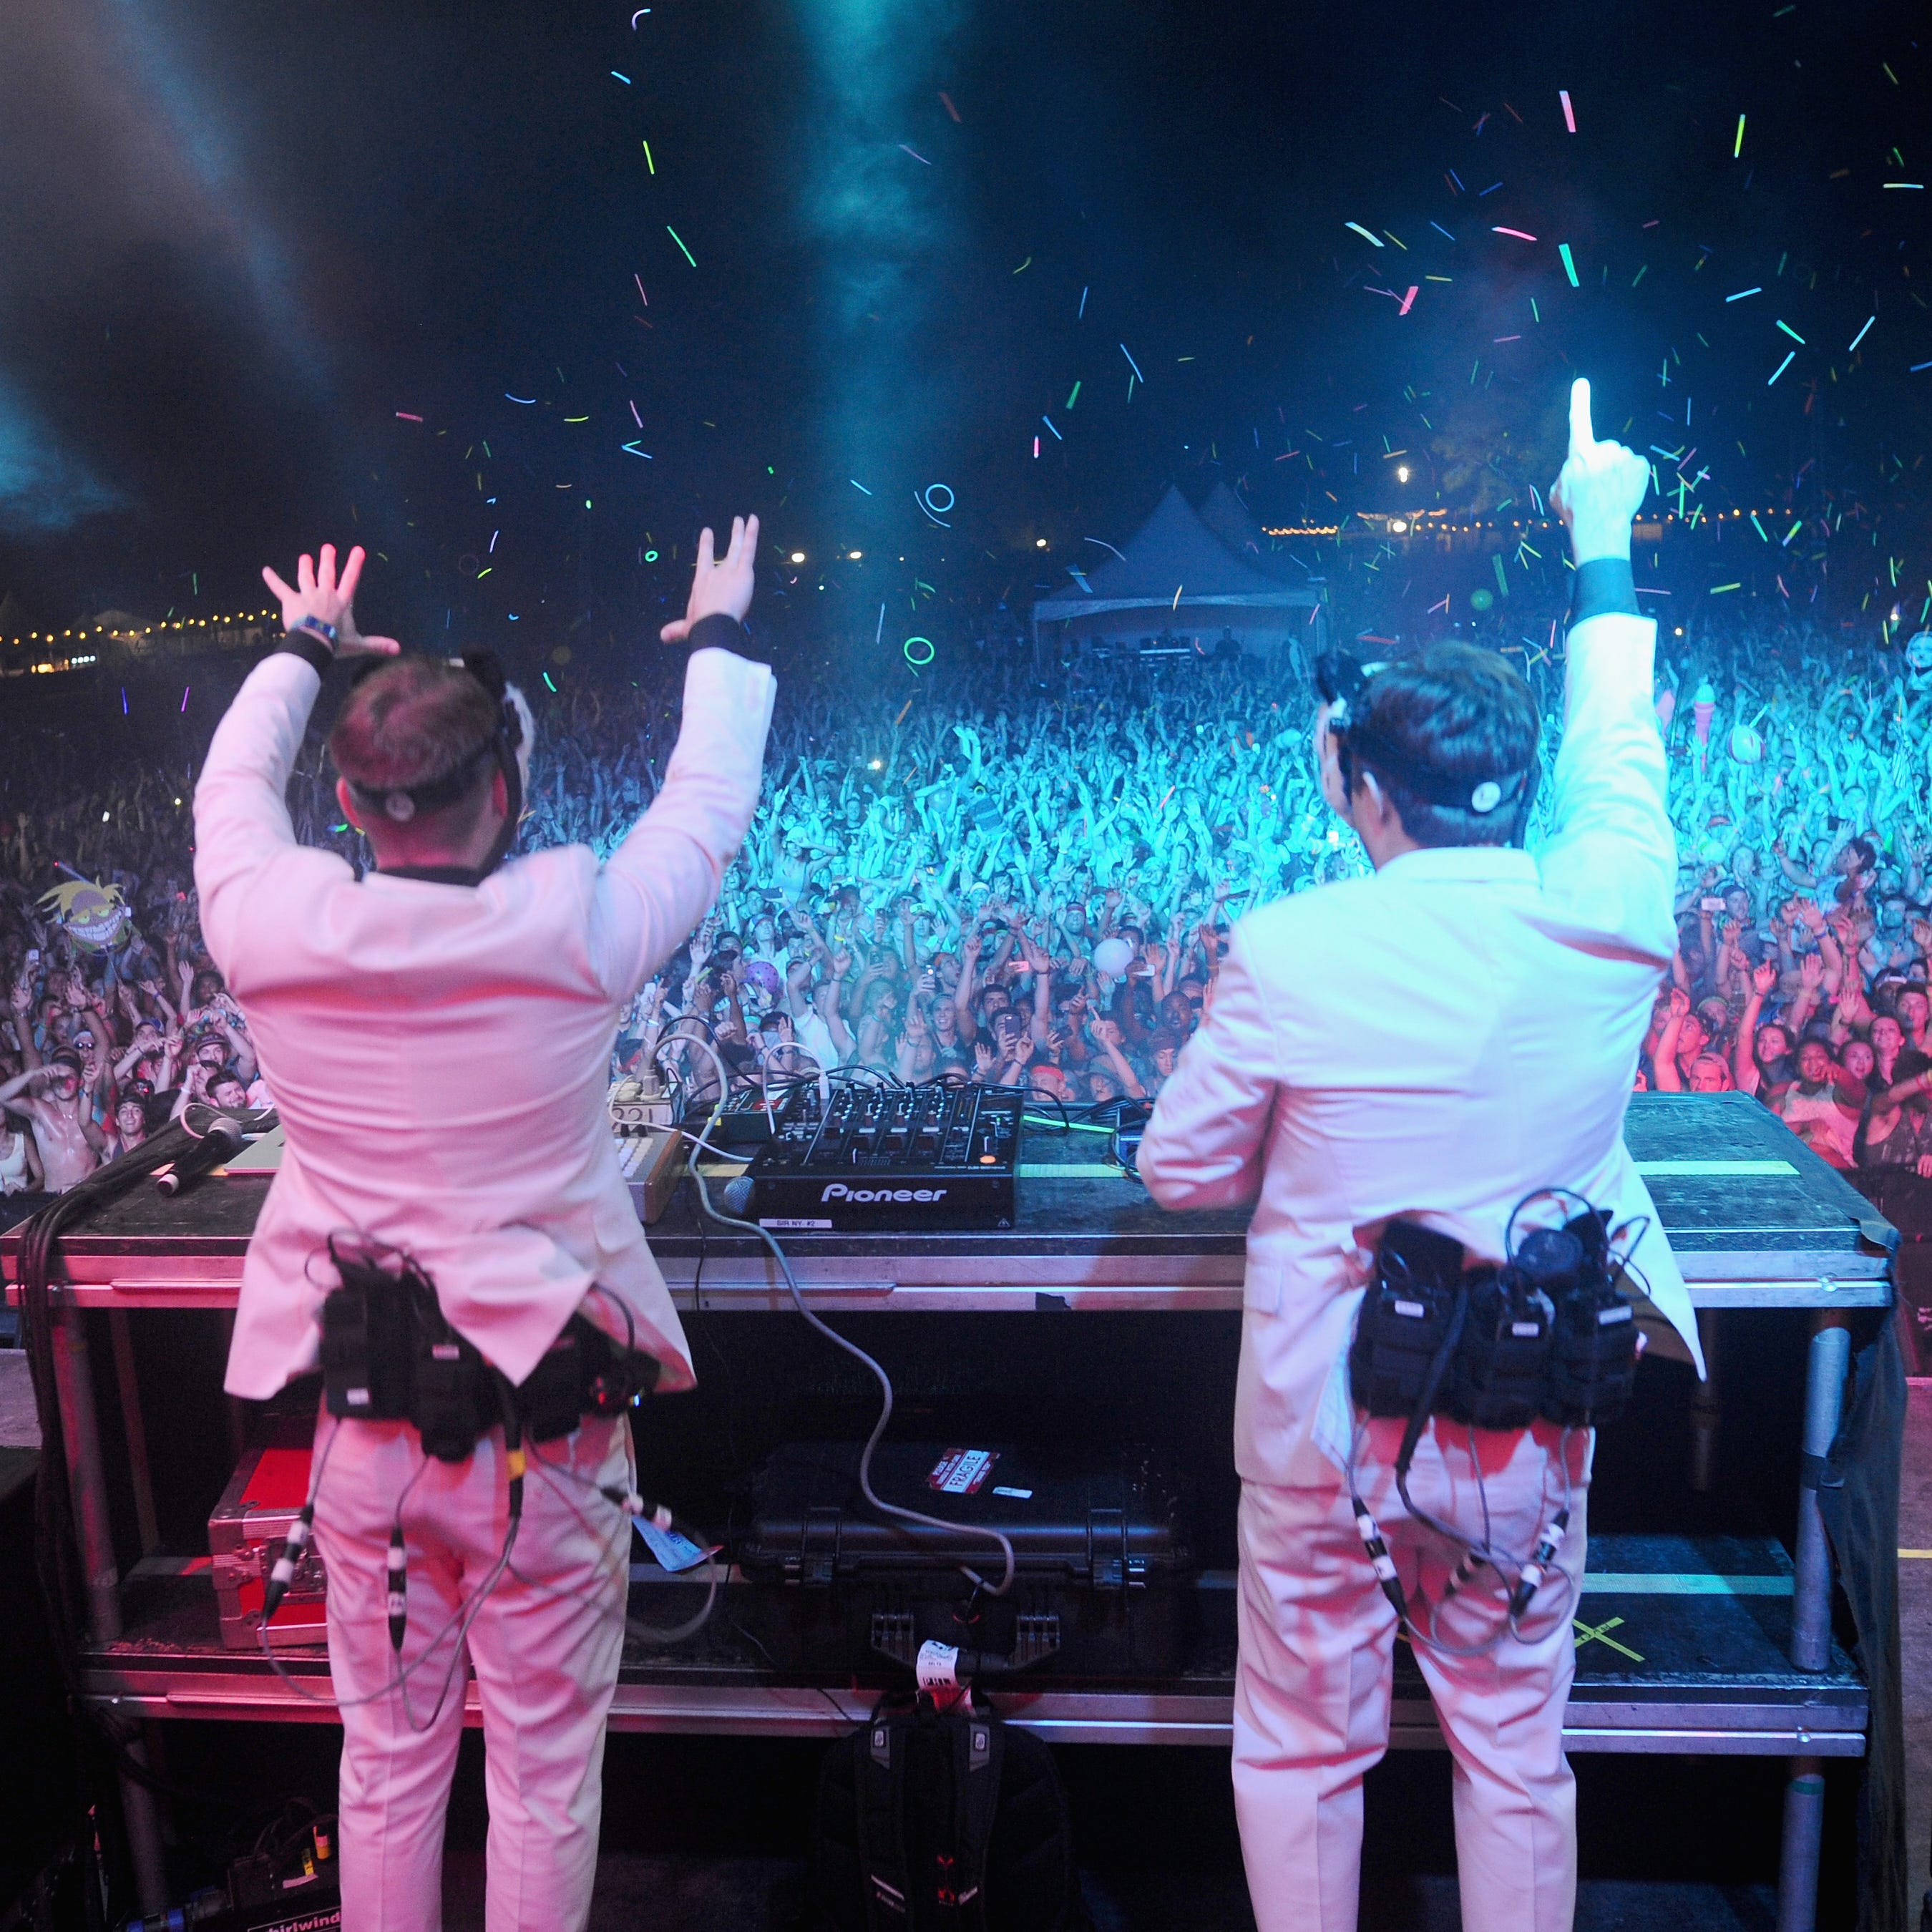 White Panda performs at Firefly Music Festival on June 21, 2015 in Dover. The EDM DJ will headline Dewey Beach's Bottle & Cork on New Year's Eve.